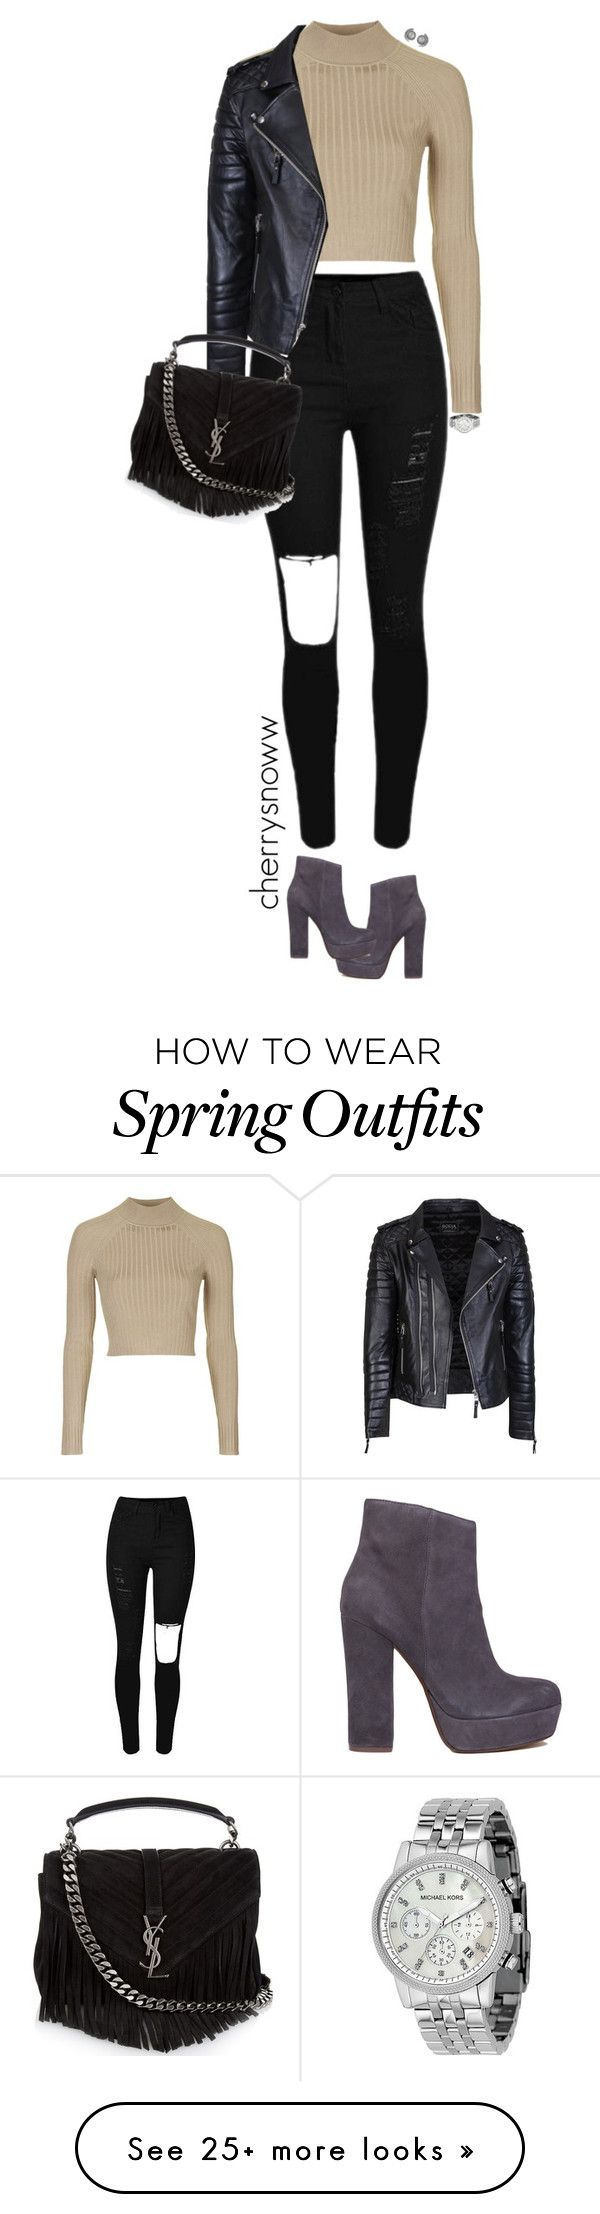 """Edgy casual chic fall/spring outfit"" by cherrysnoww on Polyvore featuring Topshop, Steve Madden, Yves Saint Laurent and Michael Kors"